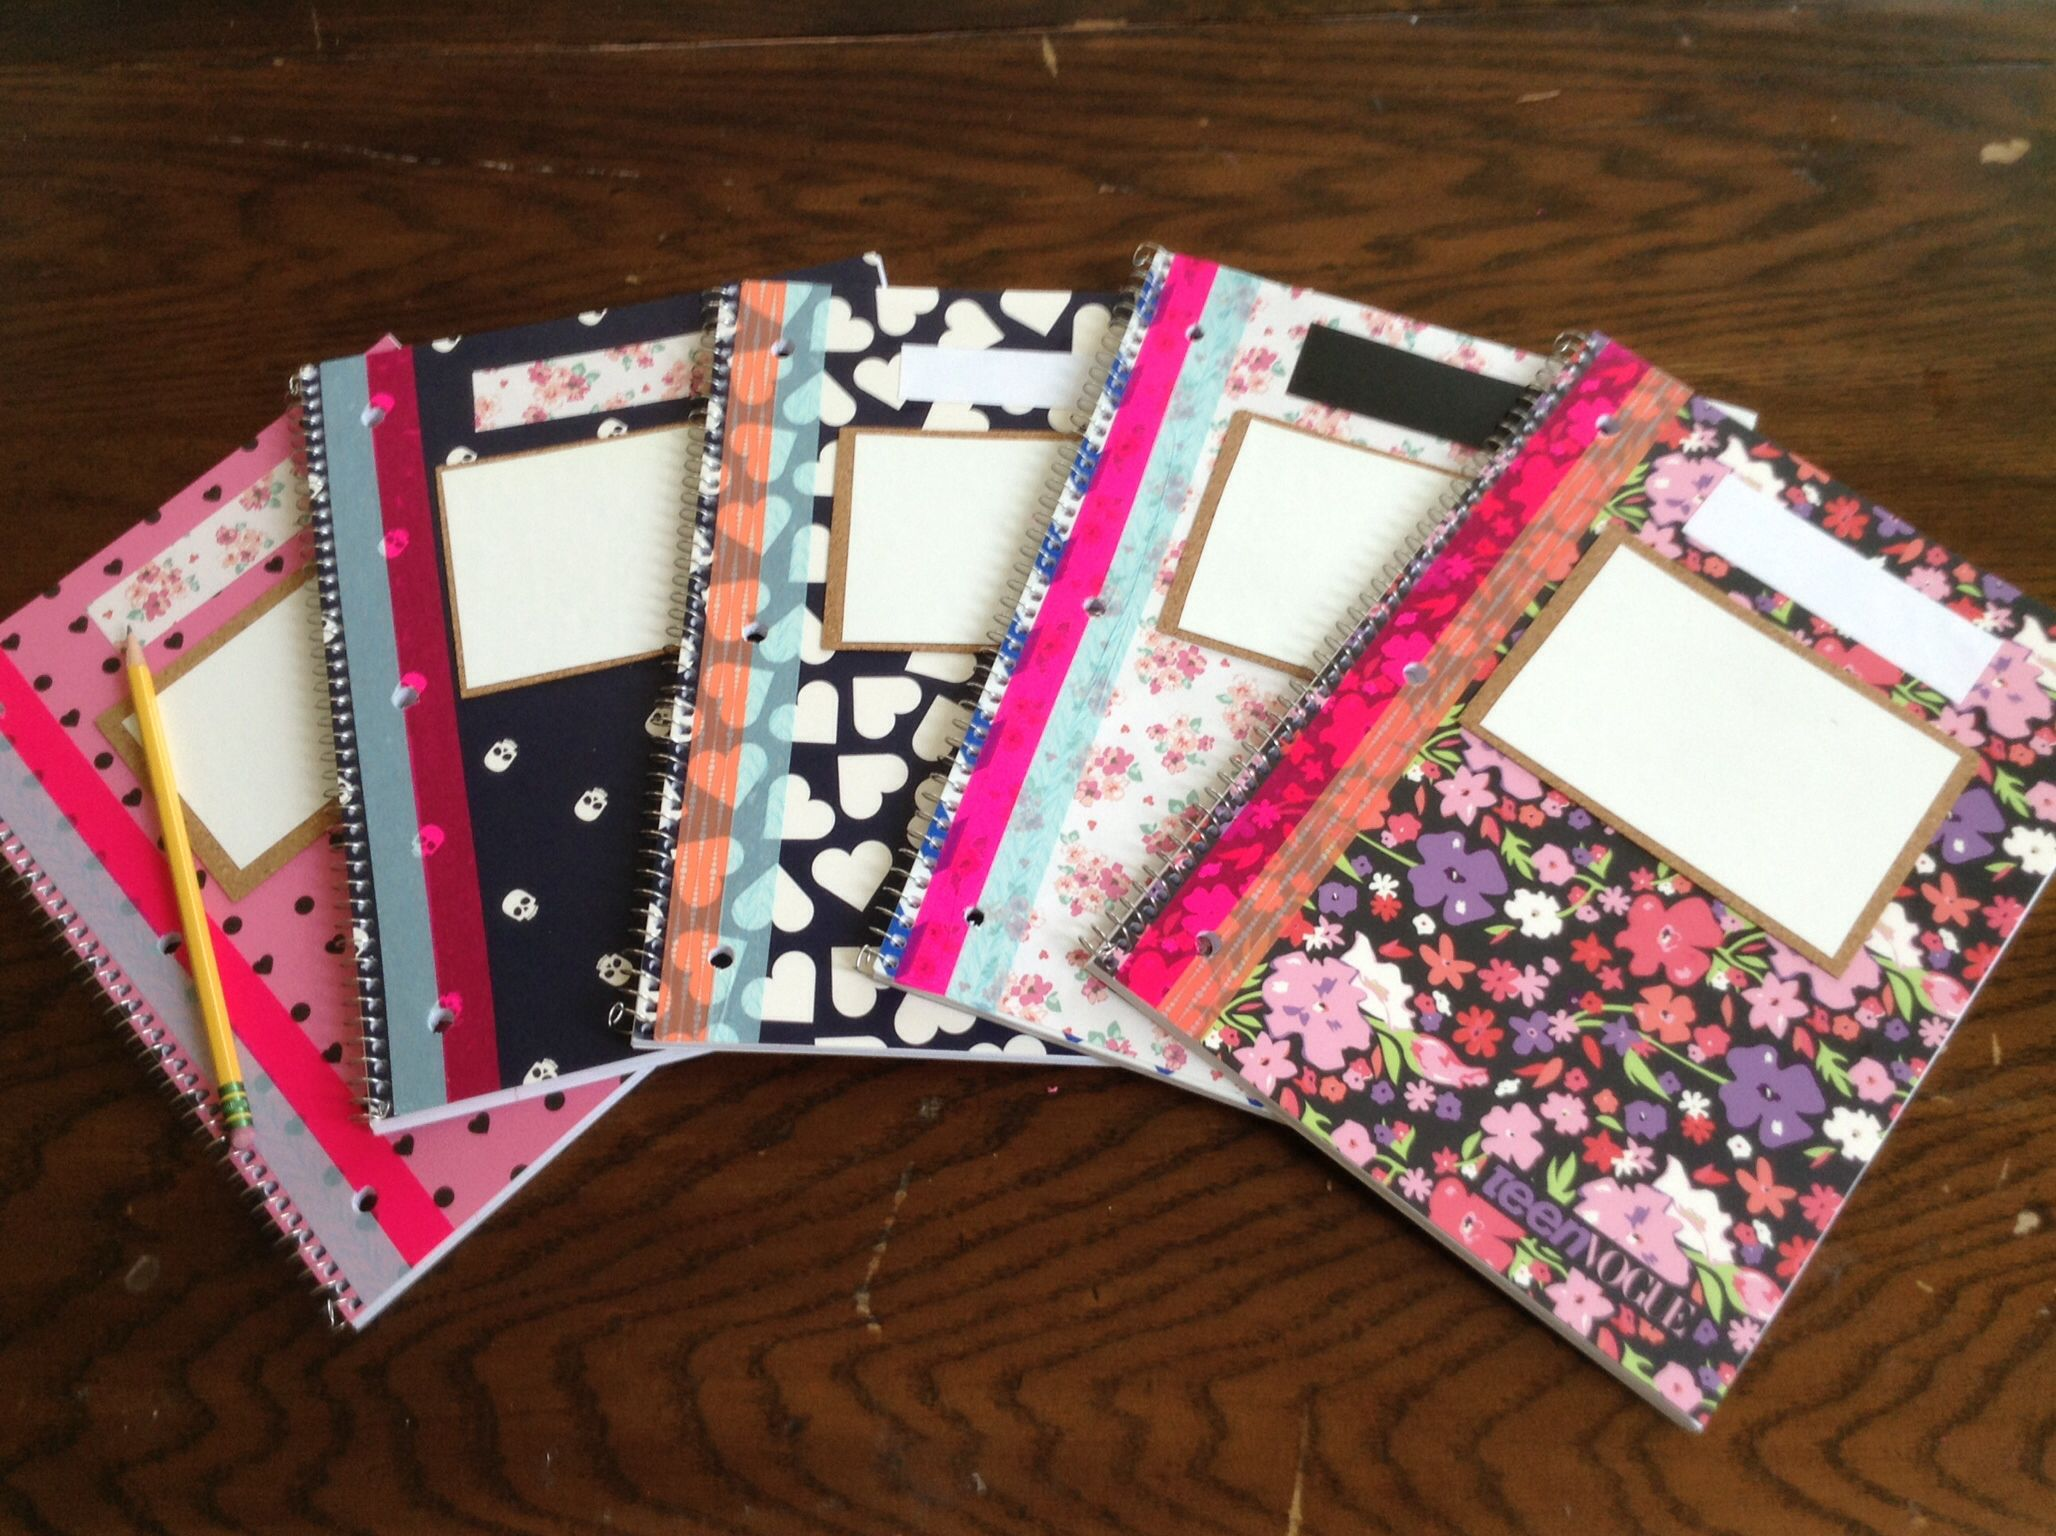 Scrapbook notebook ideas - Diy White Board Notebooks They Are Amazing I Saw Bethany Mota Do This